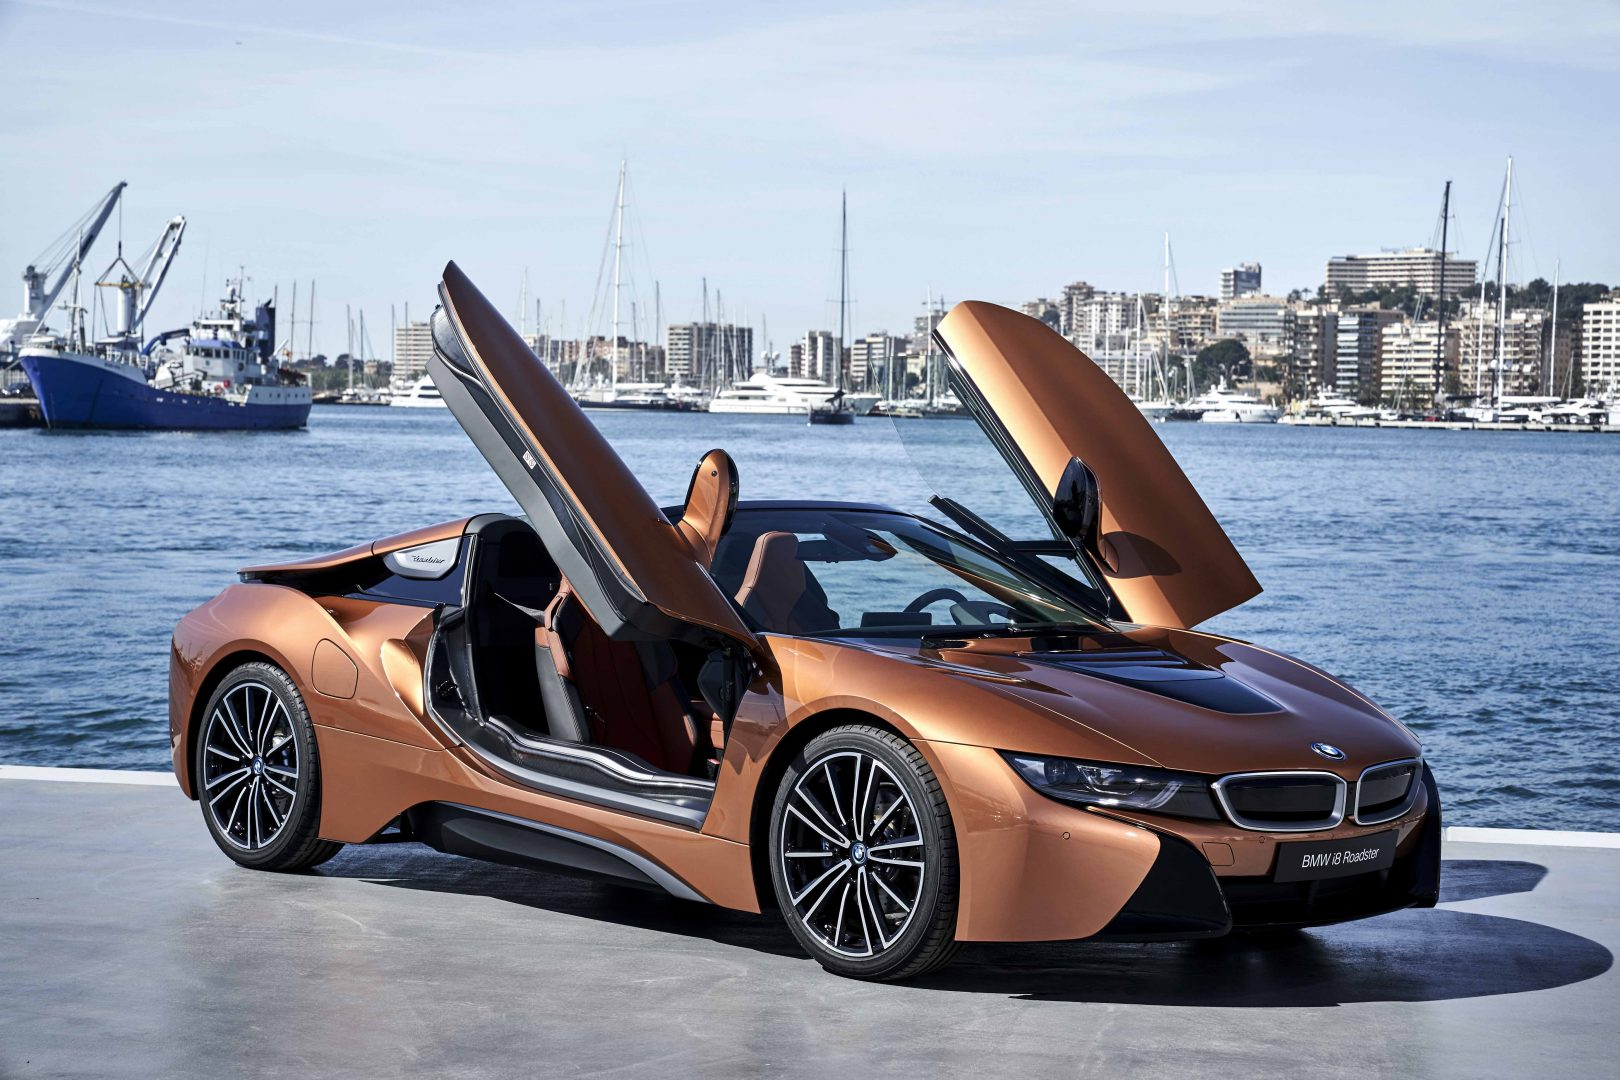 BMW_i8_Roadster_Portieres